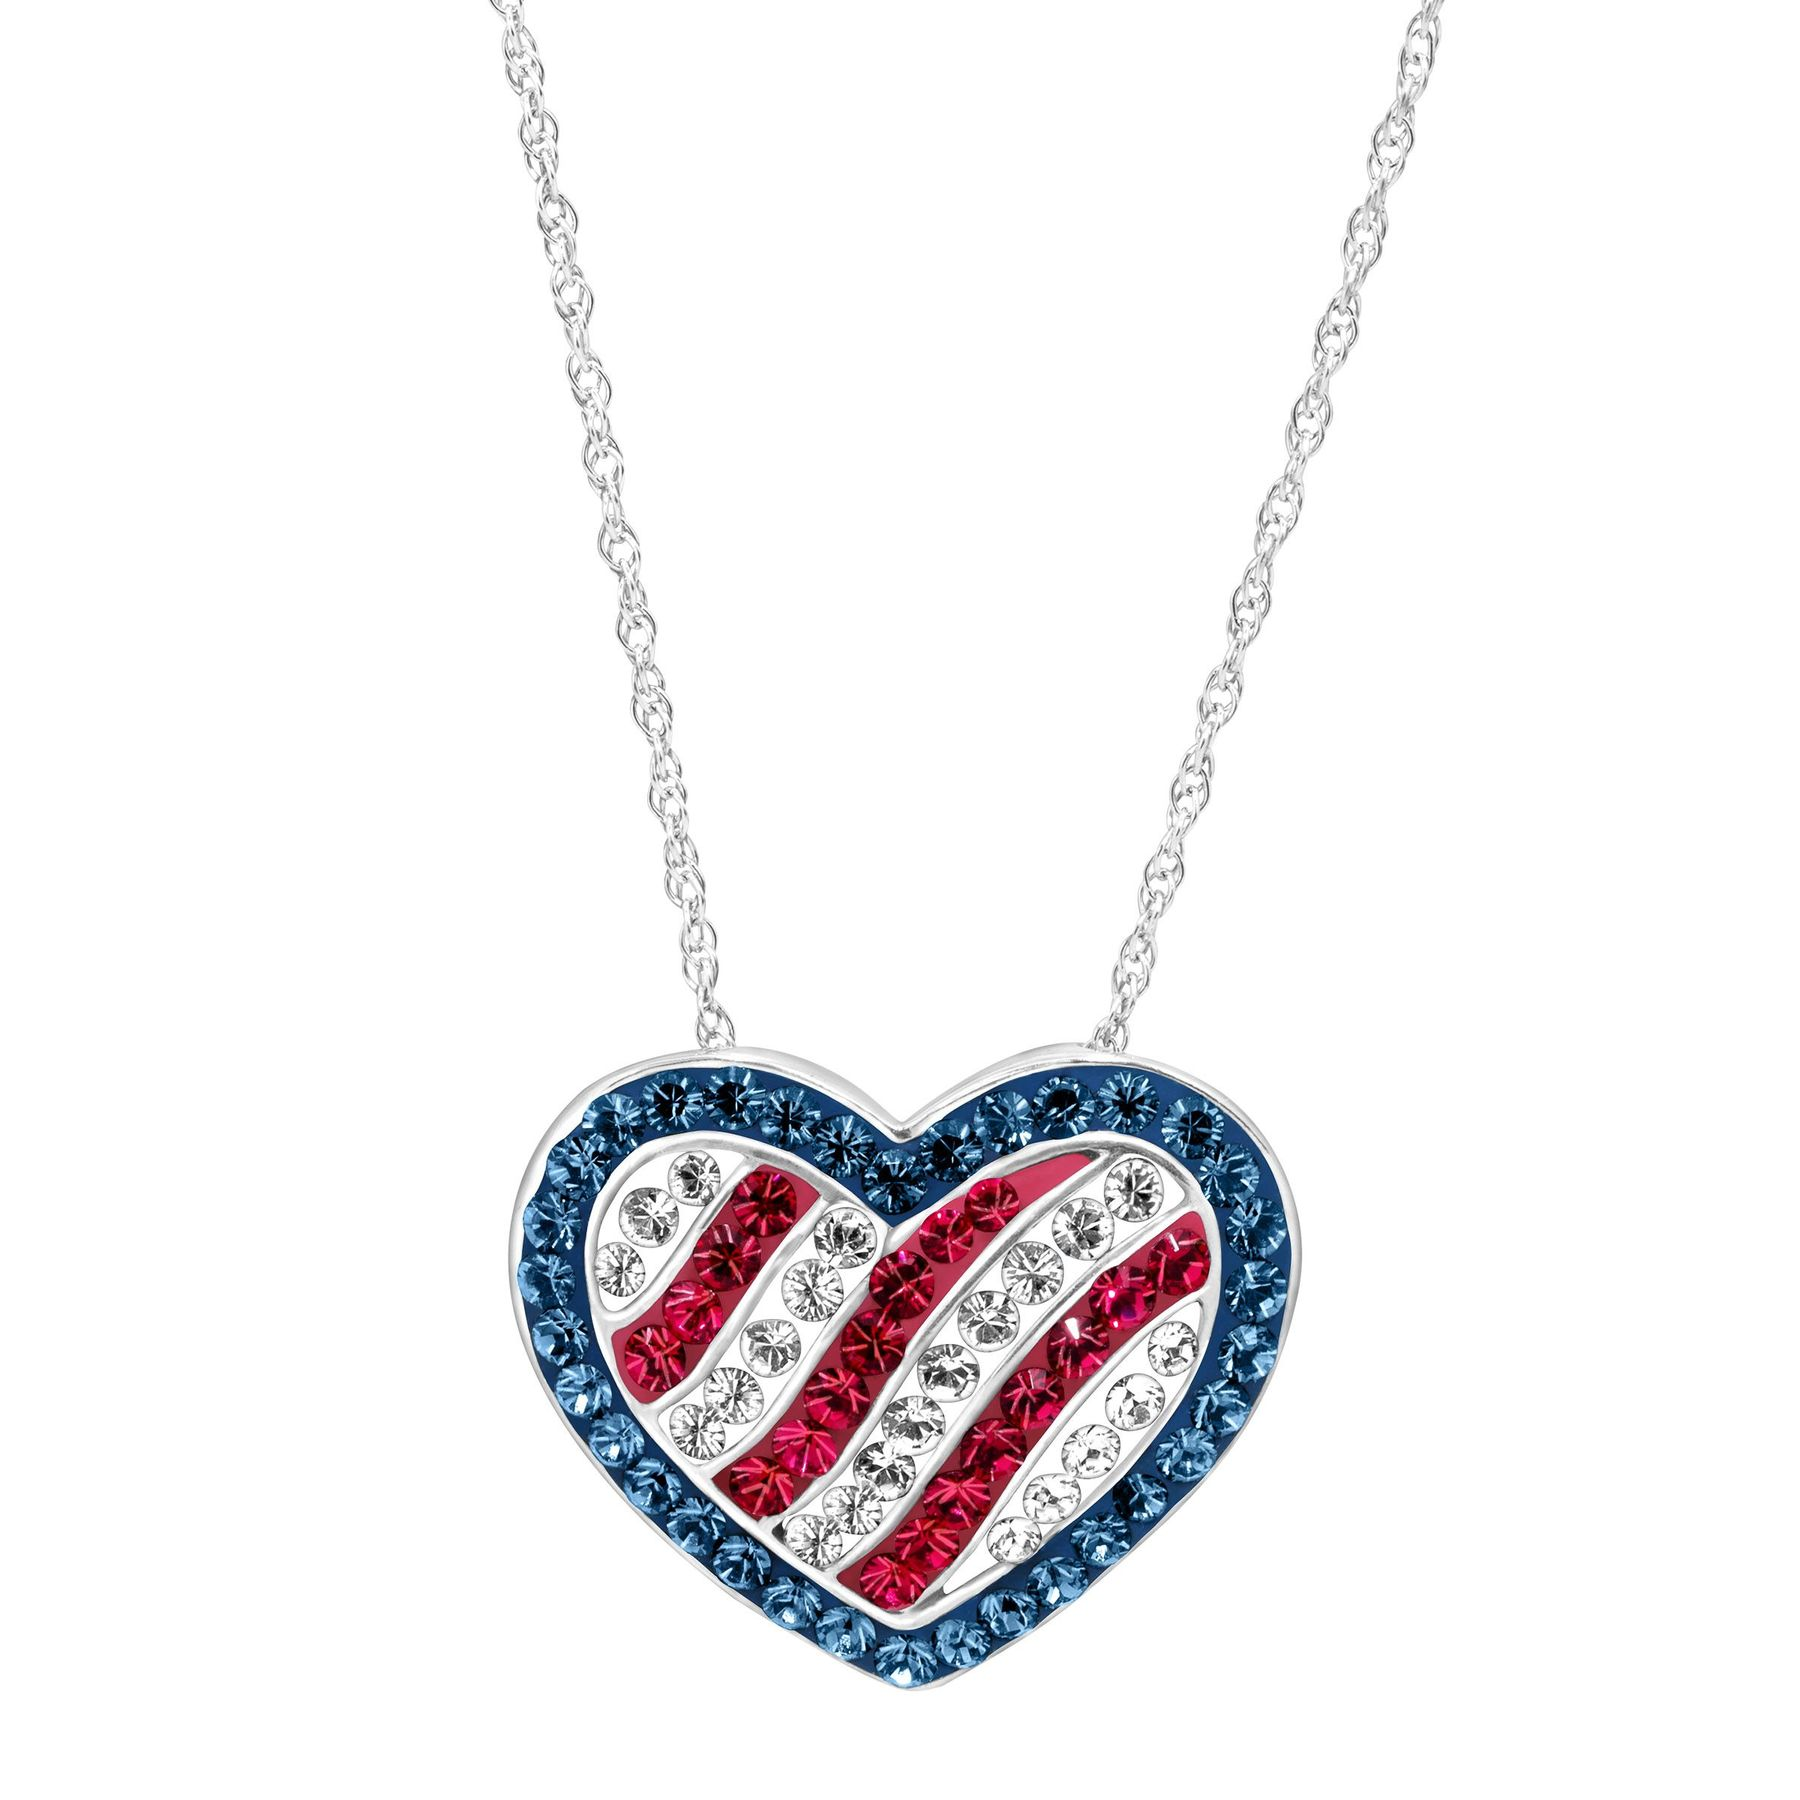 inch free allergy american for flag pendant necklace jewelry with hypoallergenic nickel safe simplywhispers rope silver